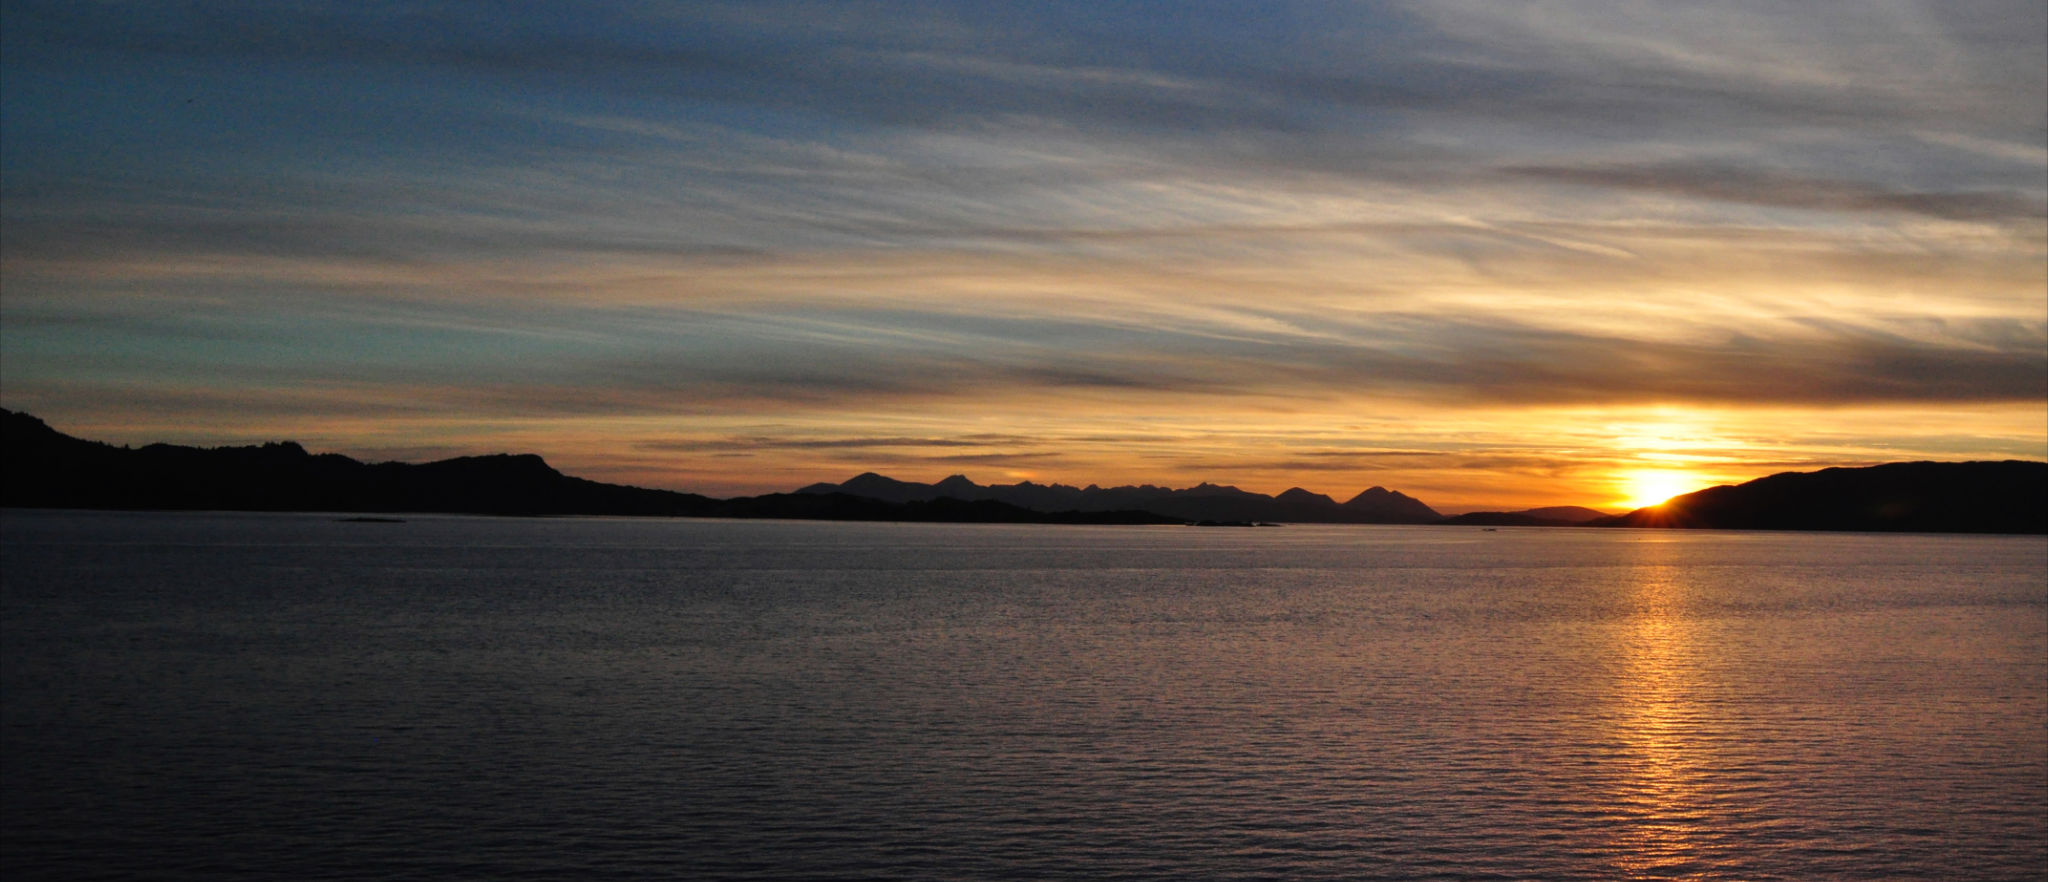 Sunset on the Cullins of Skye